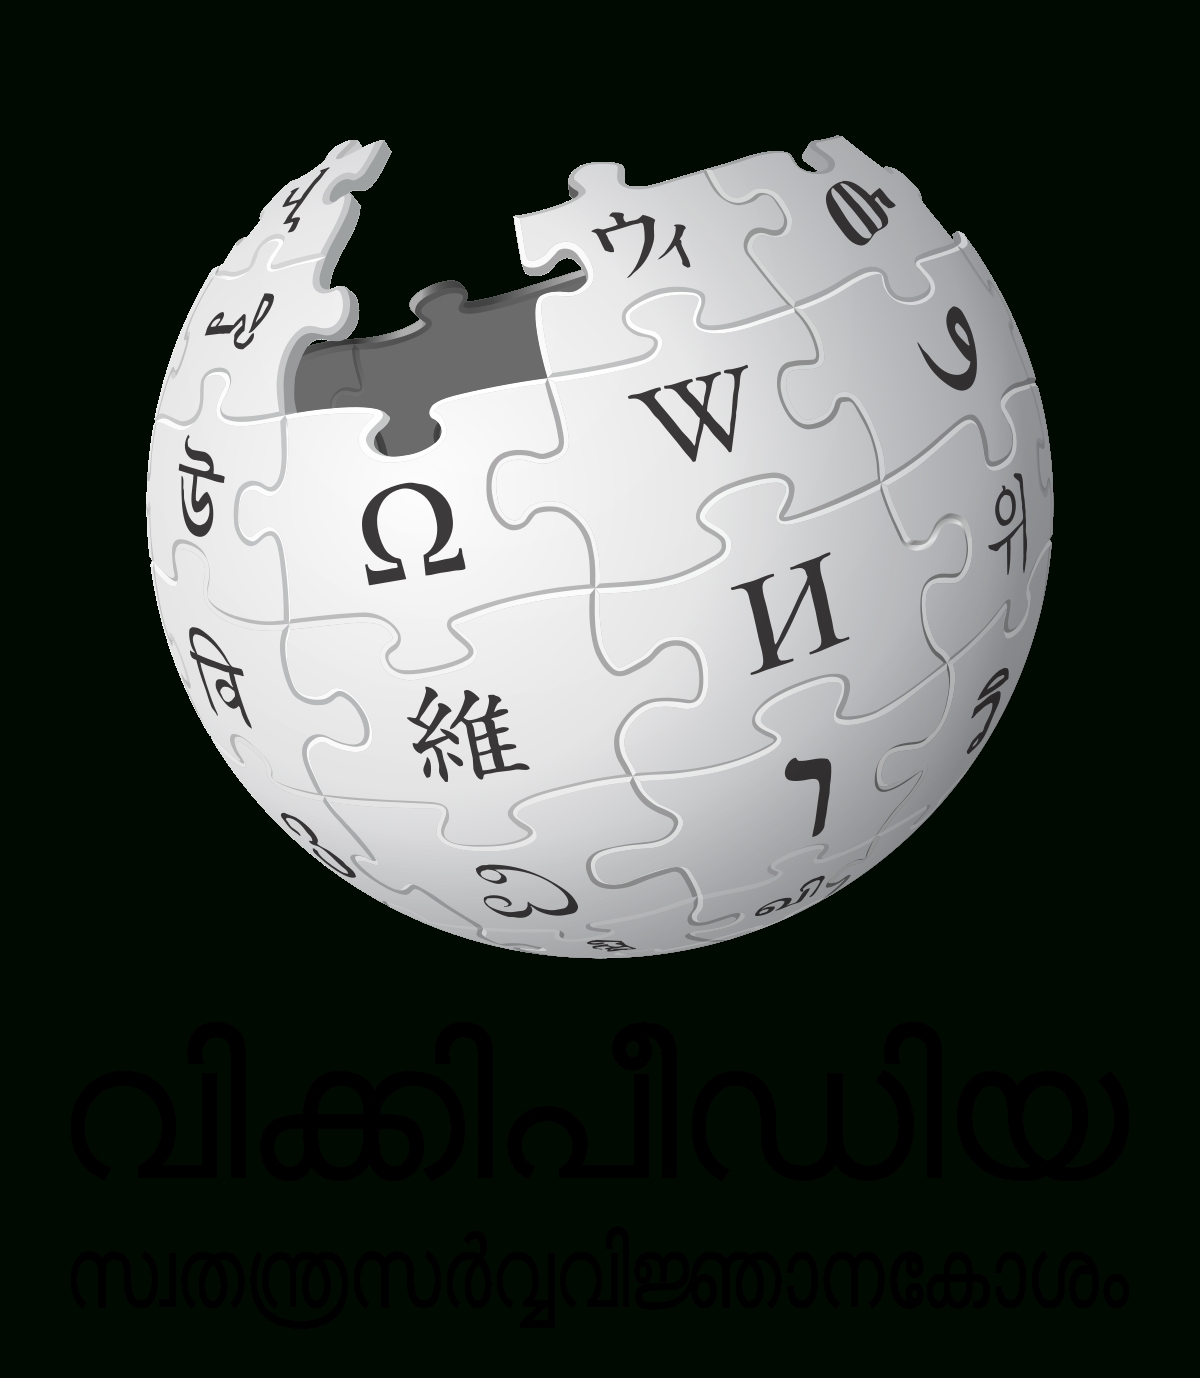 Malayalam Wikipedia - Wikipedia  Moon July 21 Day Malayalam